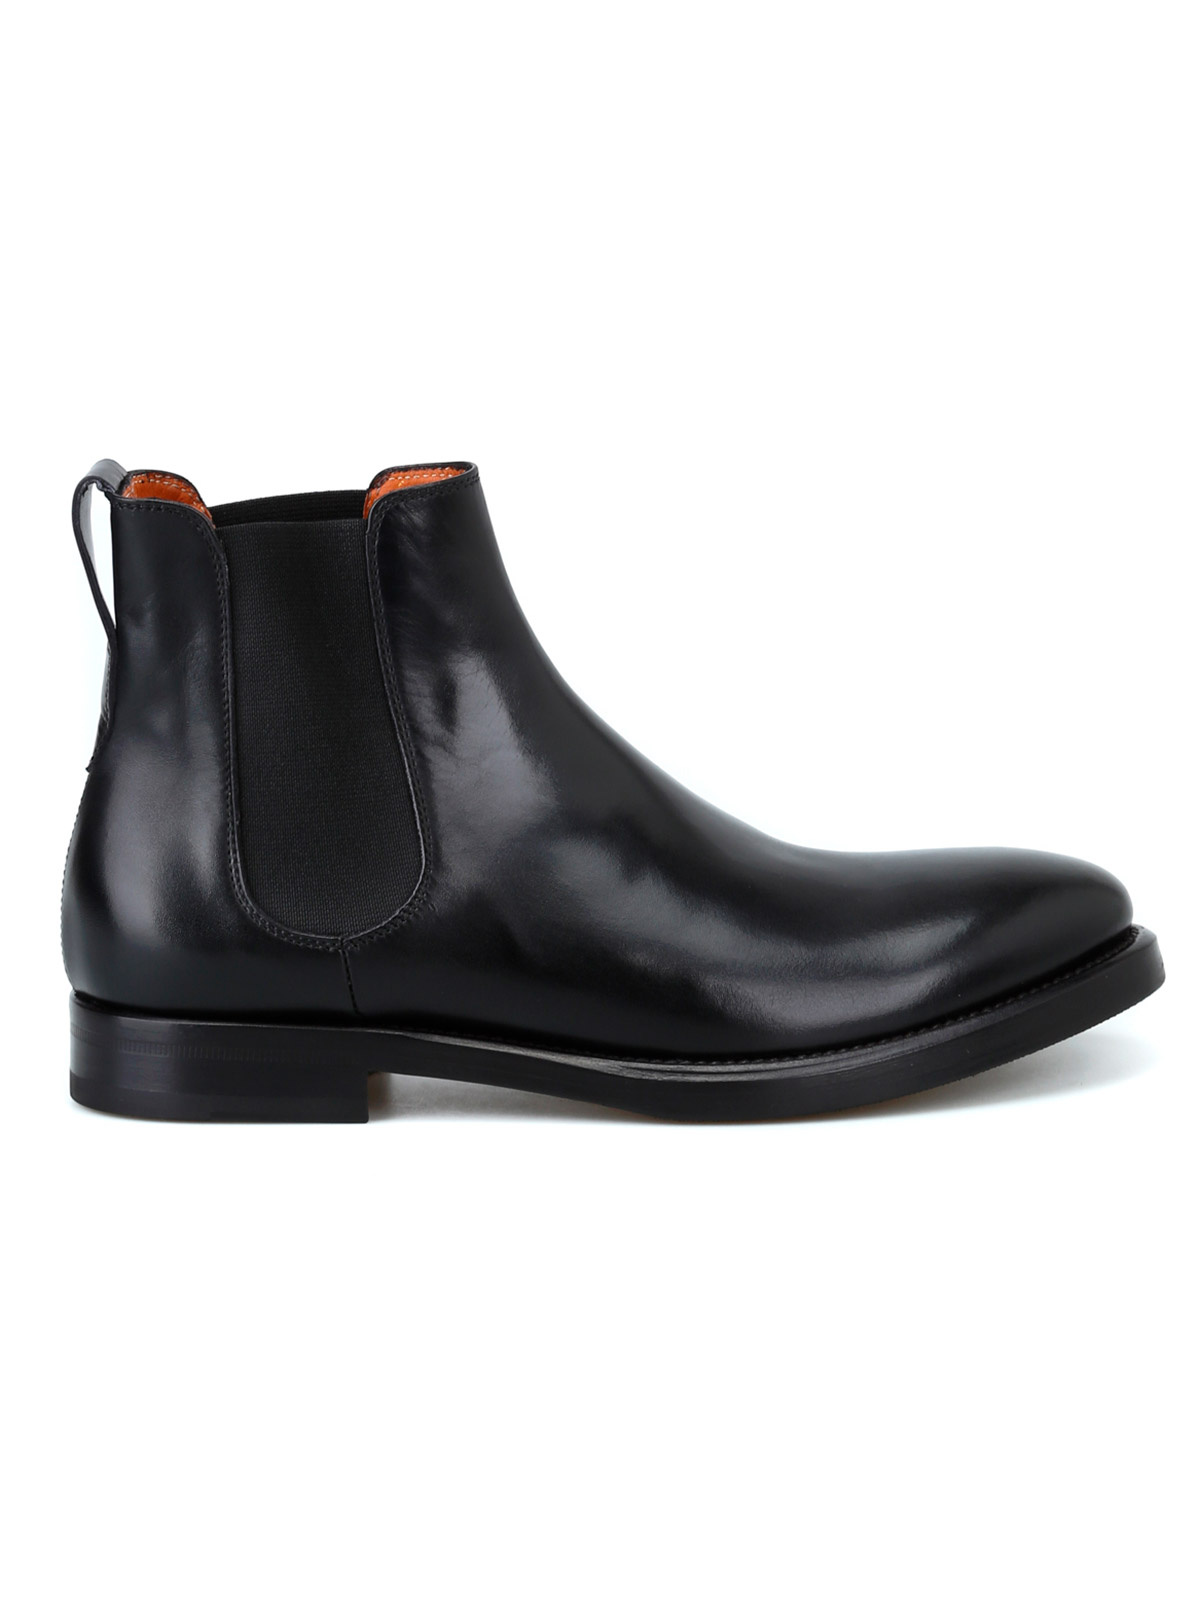 Picture of BARRETT | Men's Leather Ankle Boots